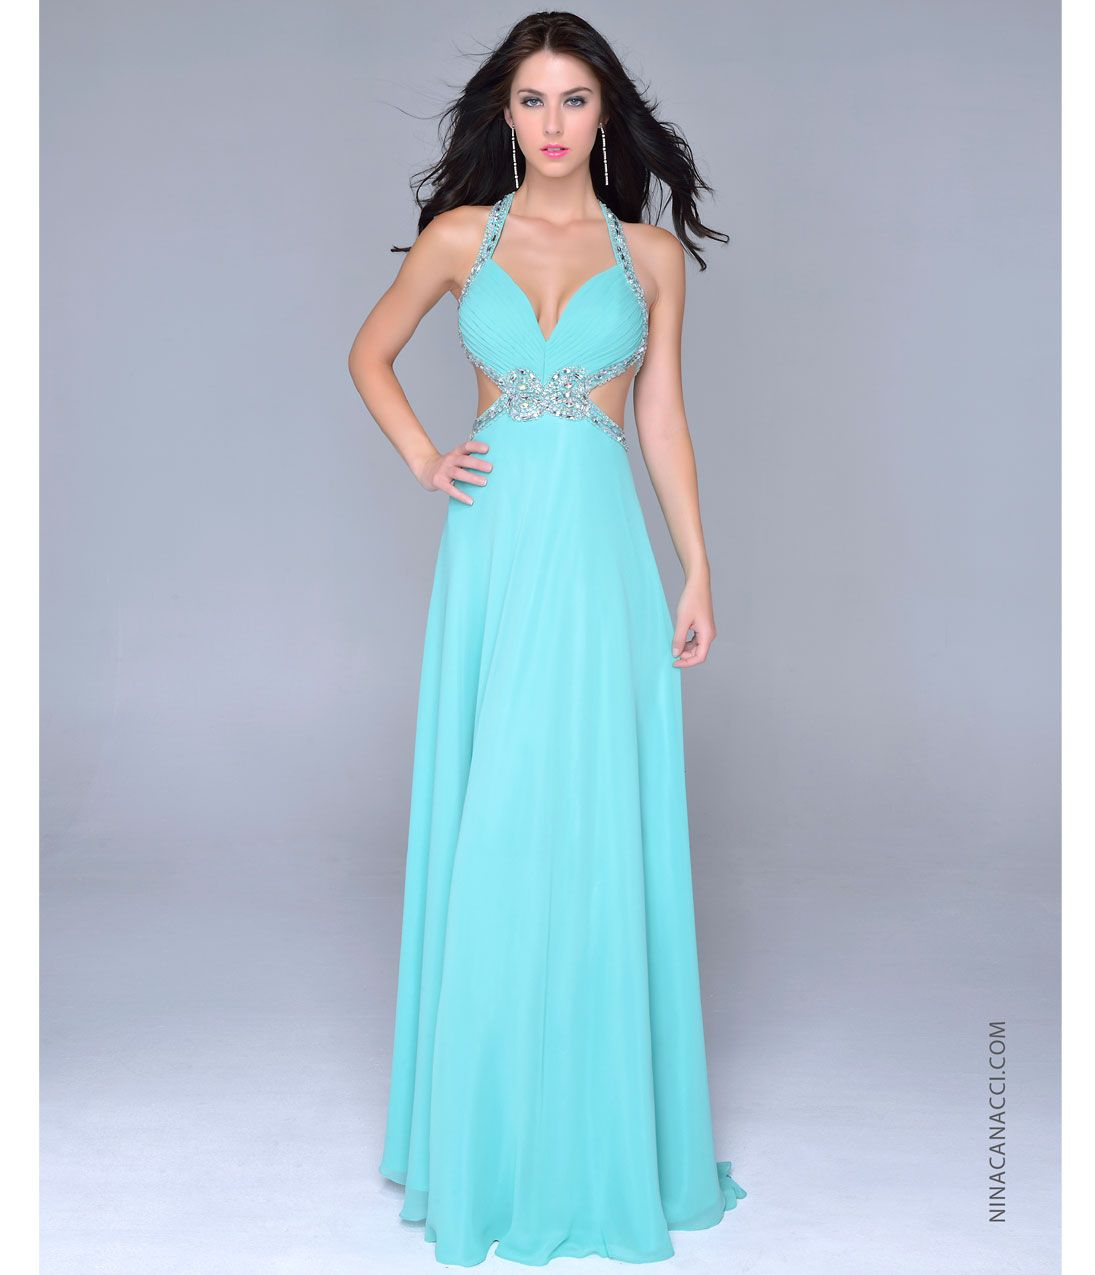 100 + Great Gatsby Prom Dresses for Sale | Gatsby, Prom and ...